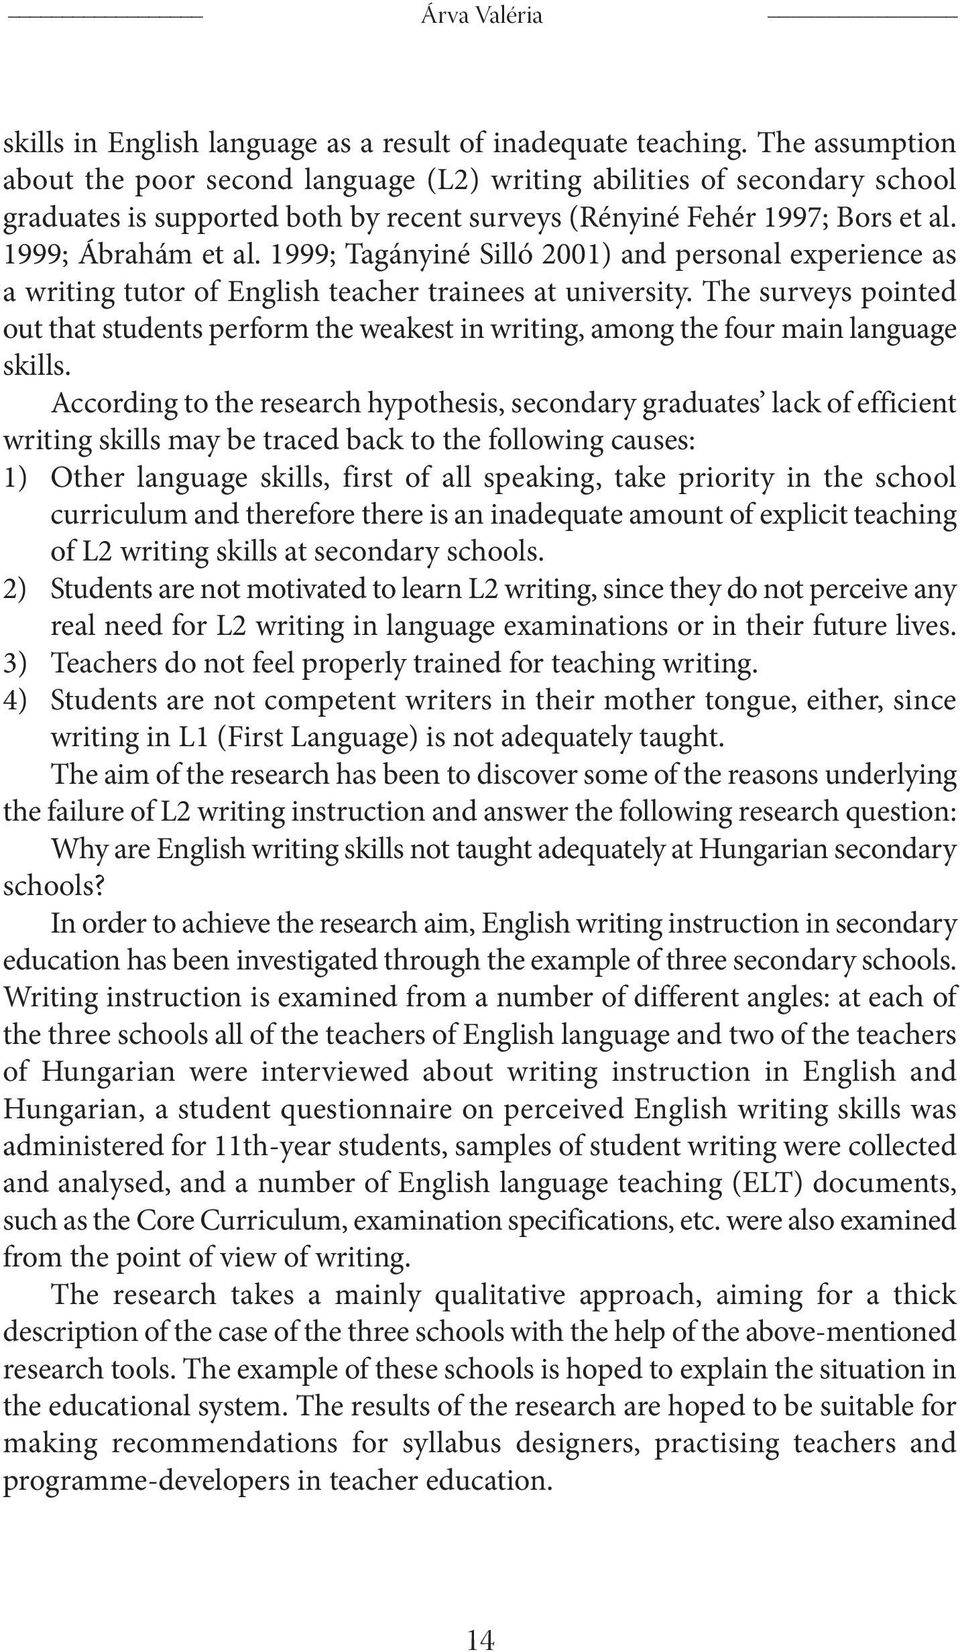 1999; Tagányiné Silló 2001) and personal experience as a writing tutor of English teacher trainees at university.